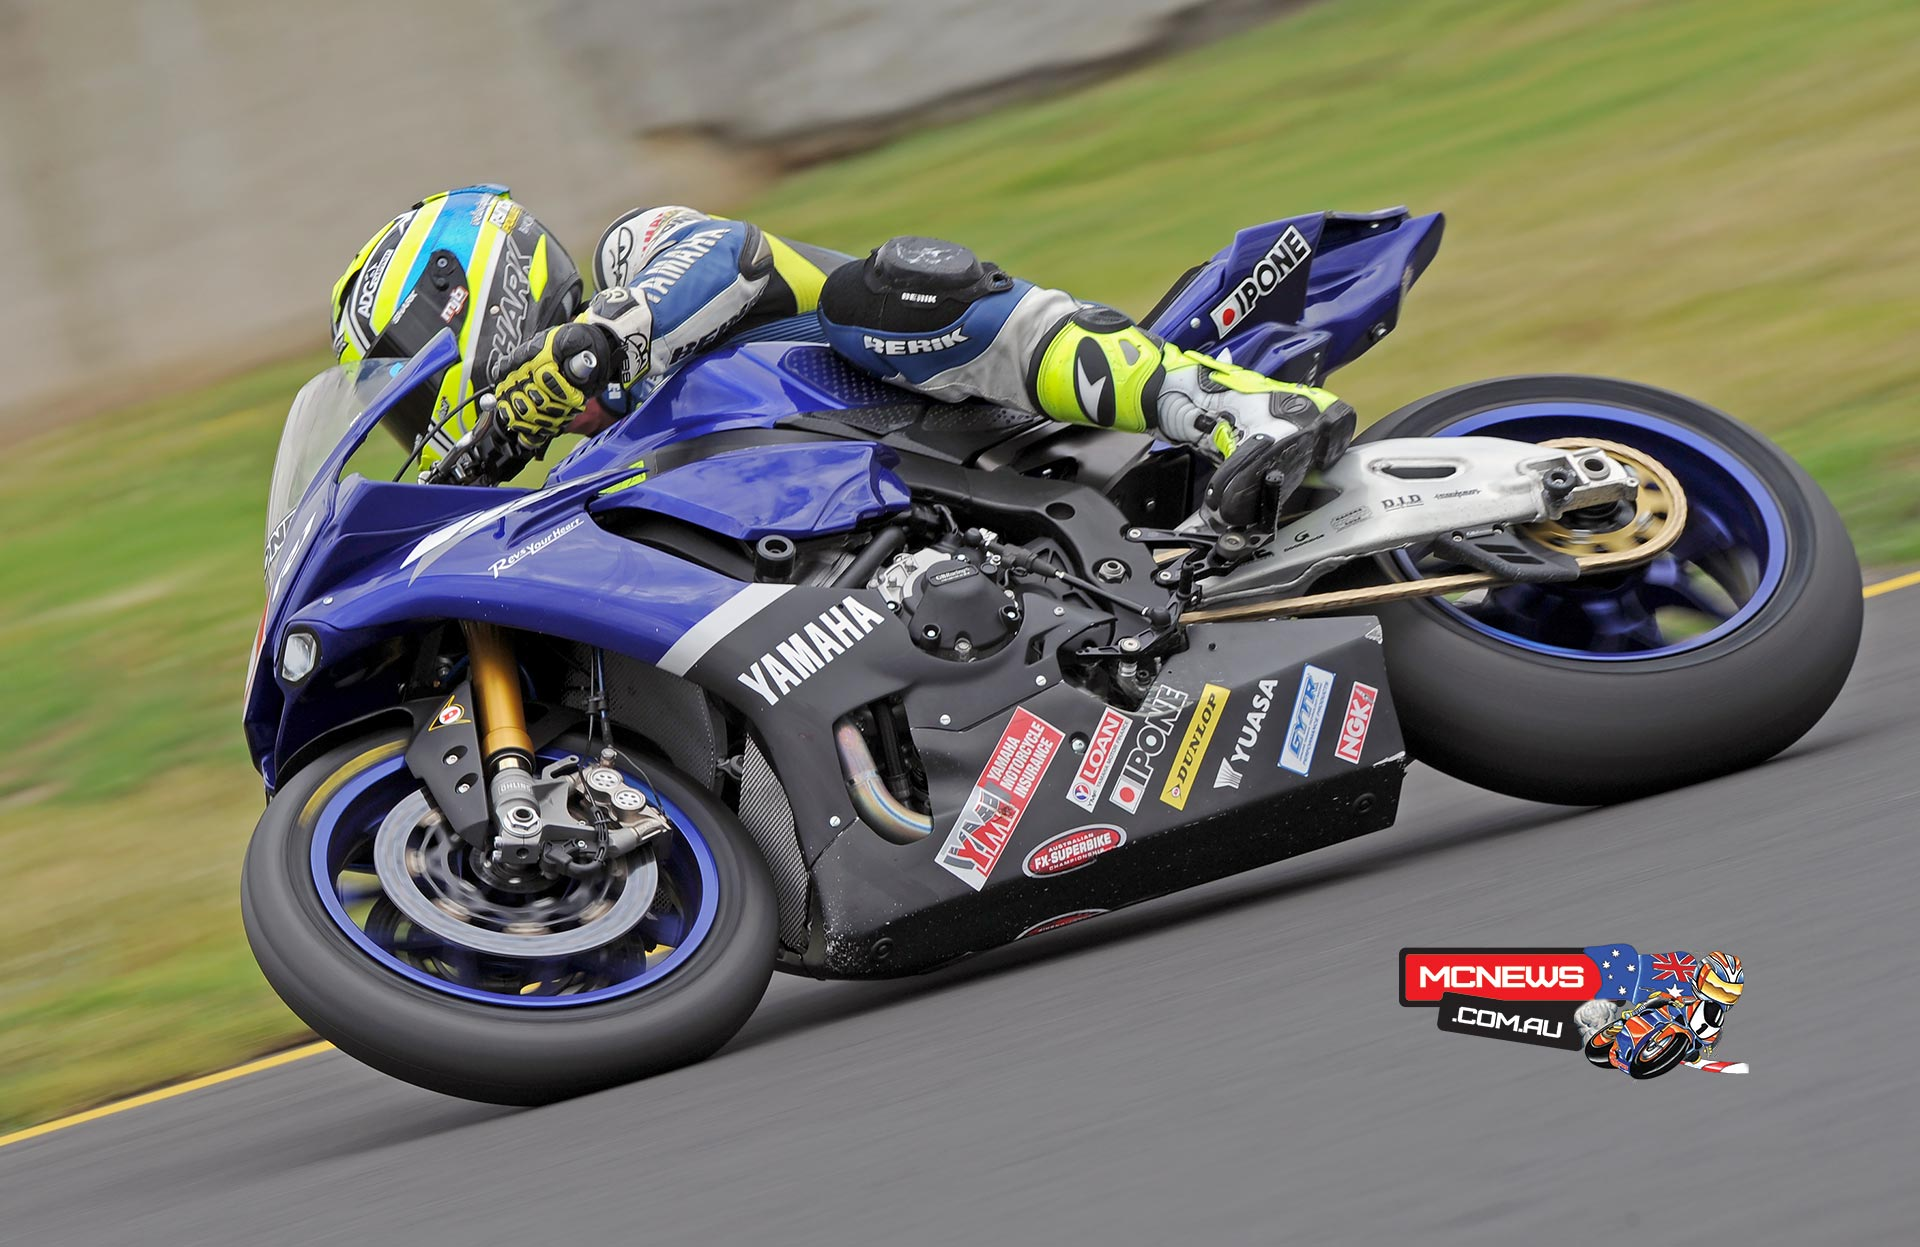 Cru Halliday in action at Sydney Motorsports Park this morning. Image by Keith Muir